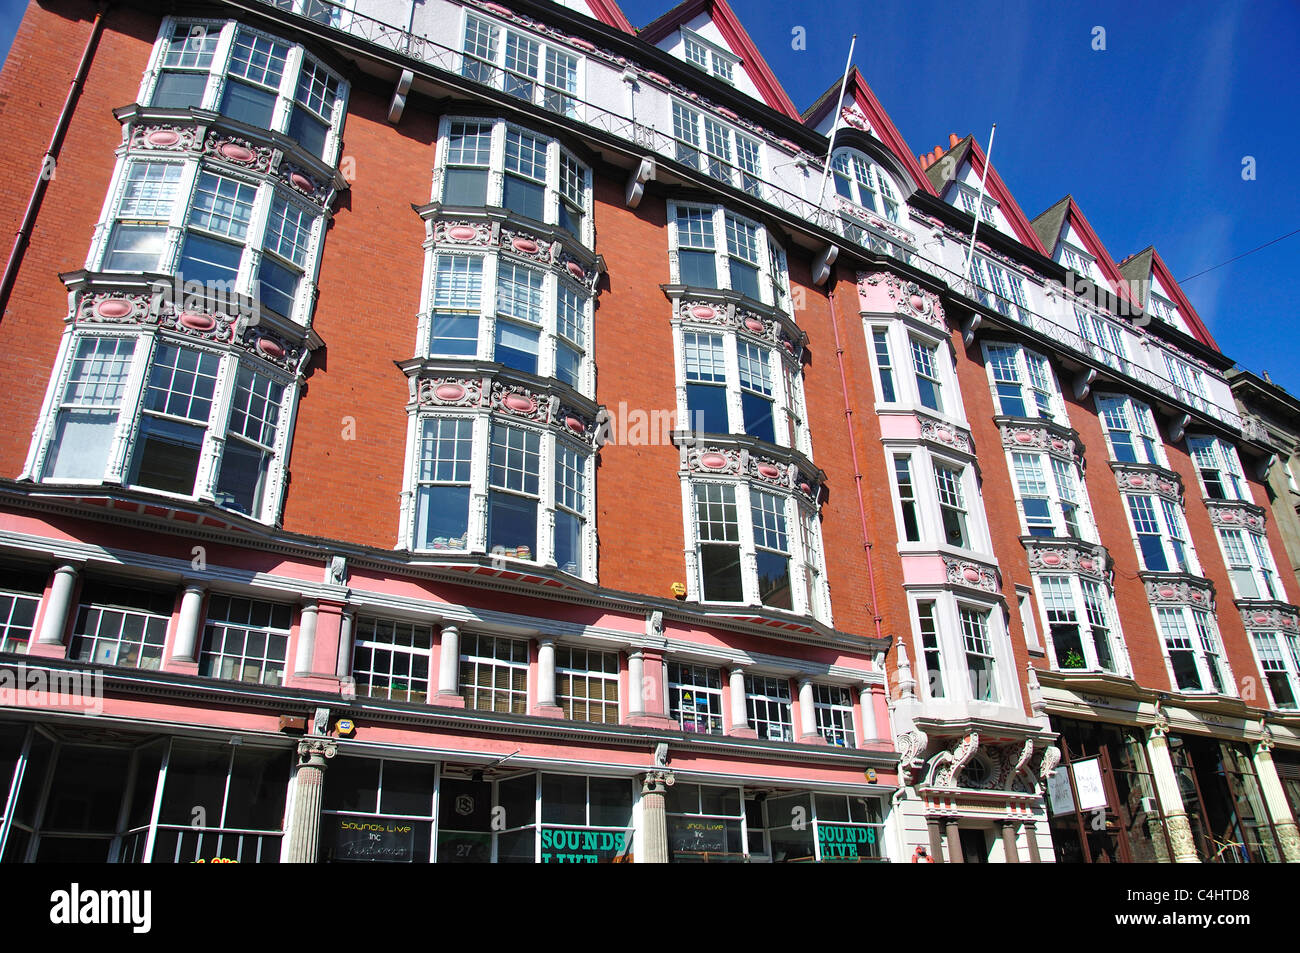 Period building, Dean Street, Newcastle upon Tyne, Tyne and Wear, England, United Kingdom - Stock Image